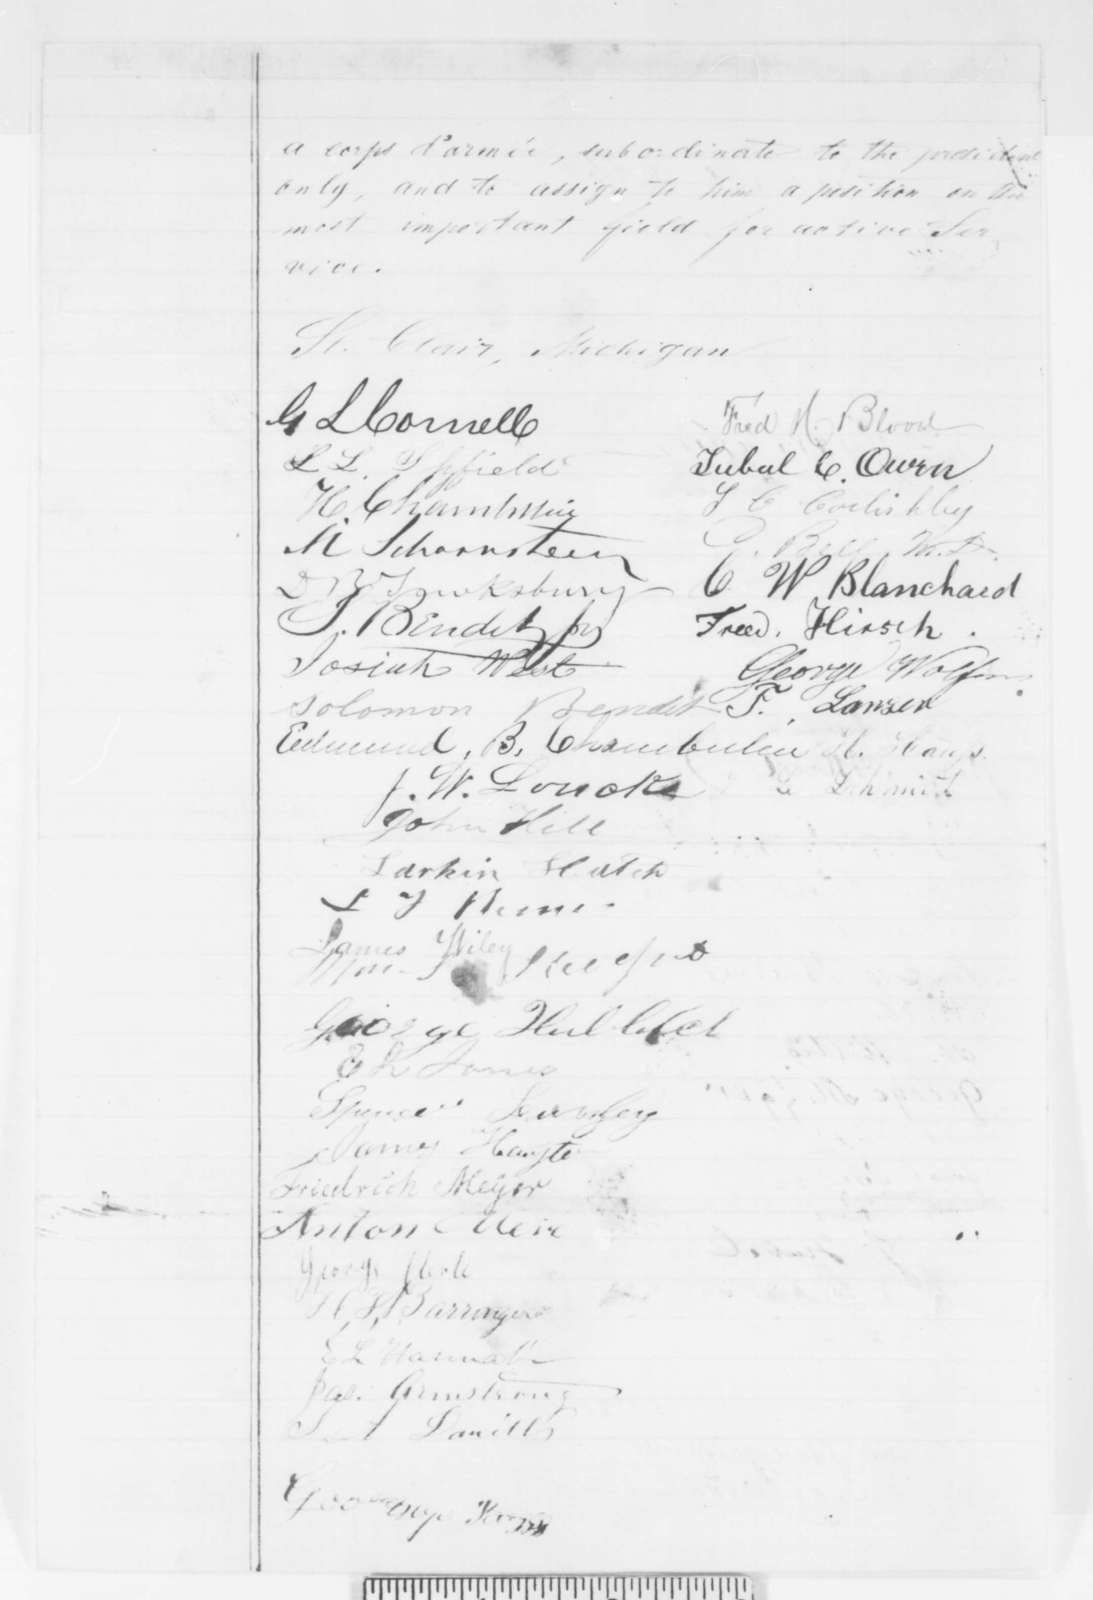 St. Clair Michigan Citizens to Abraham Lincoln, Friday, May 02, 1862  (Petition recommending Franz Sigel)